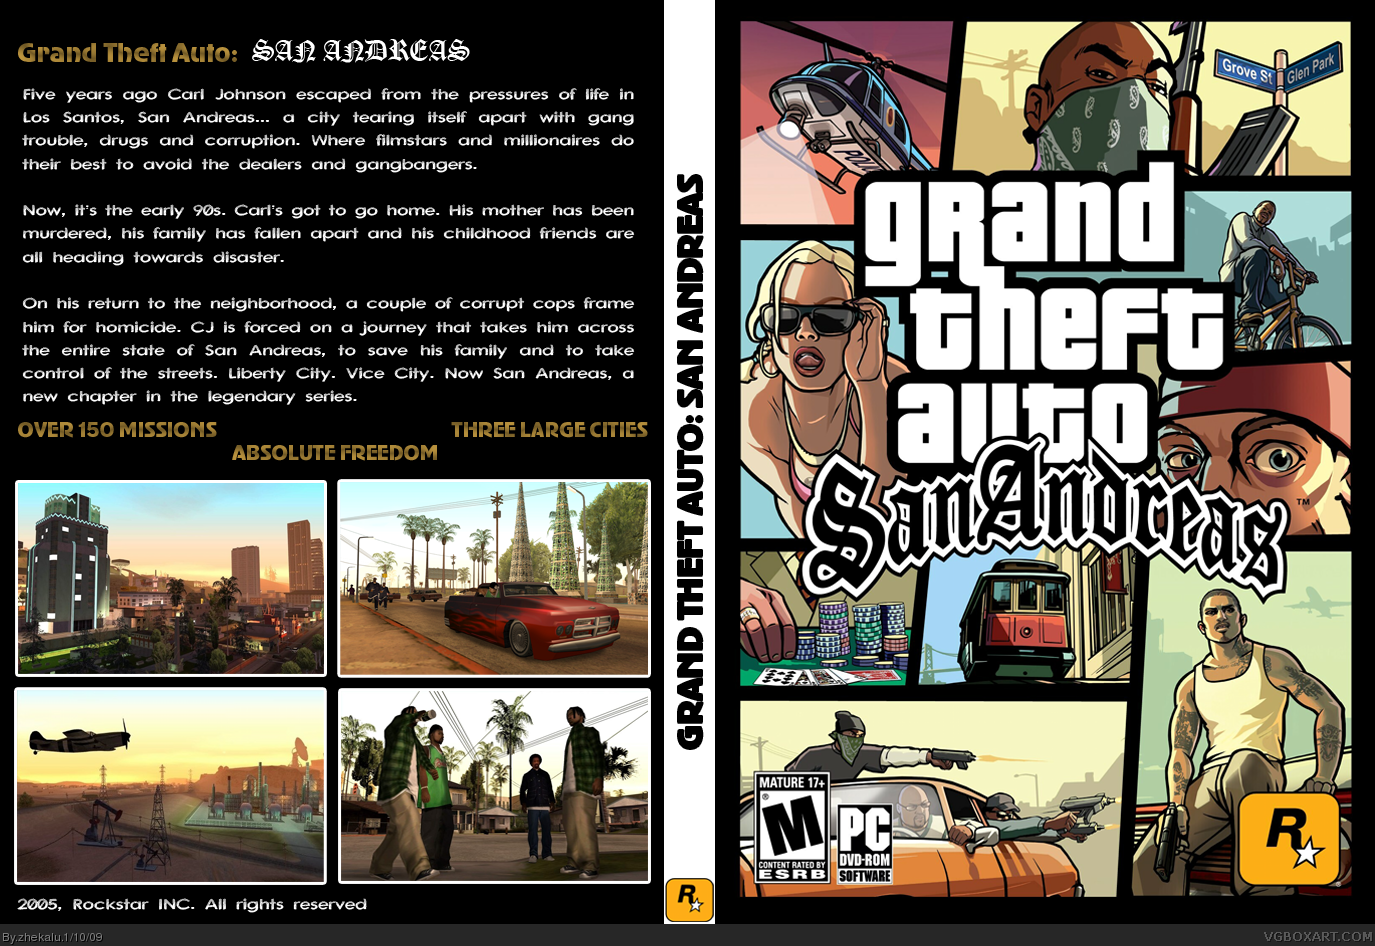 Cheat gta san andreas pc update terbaru | lengkap :